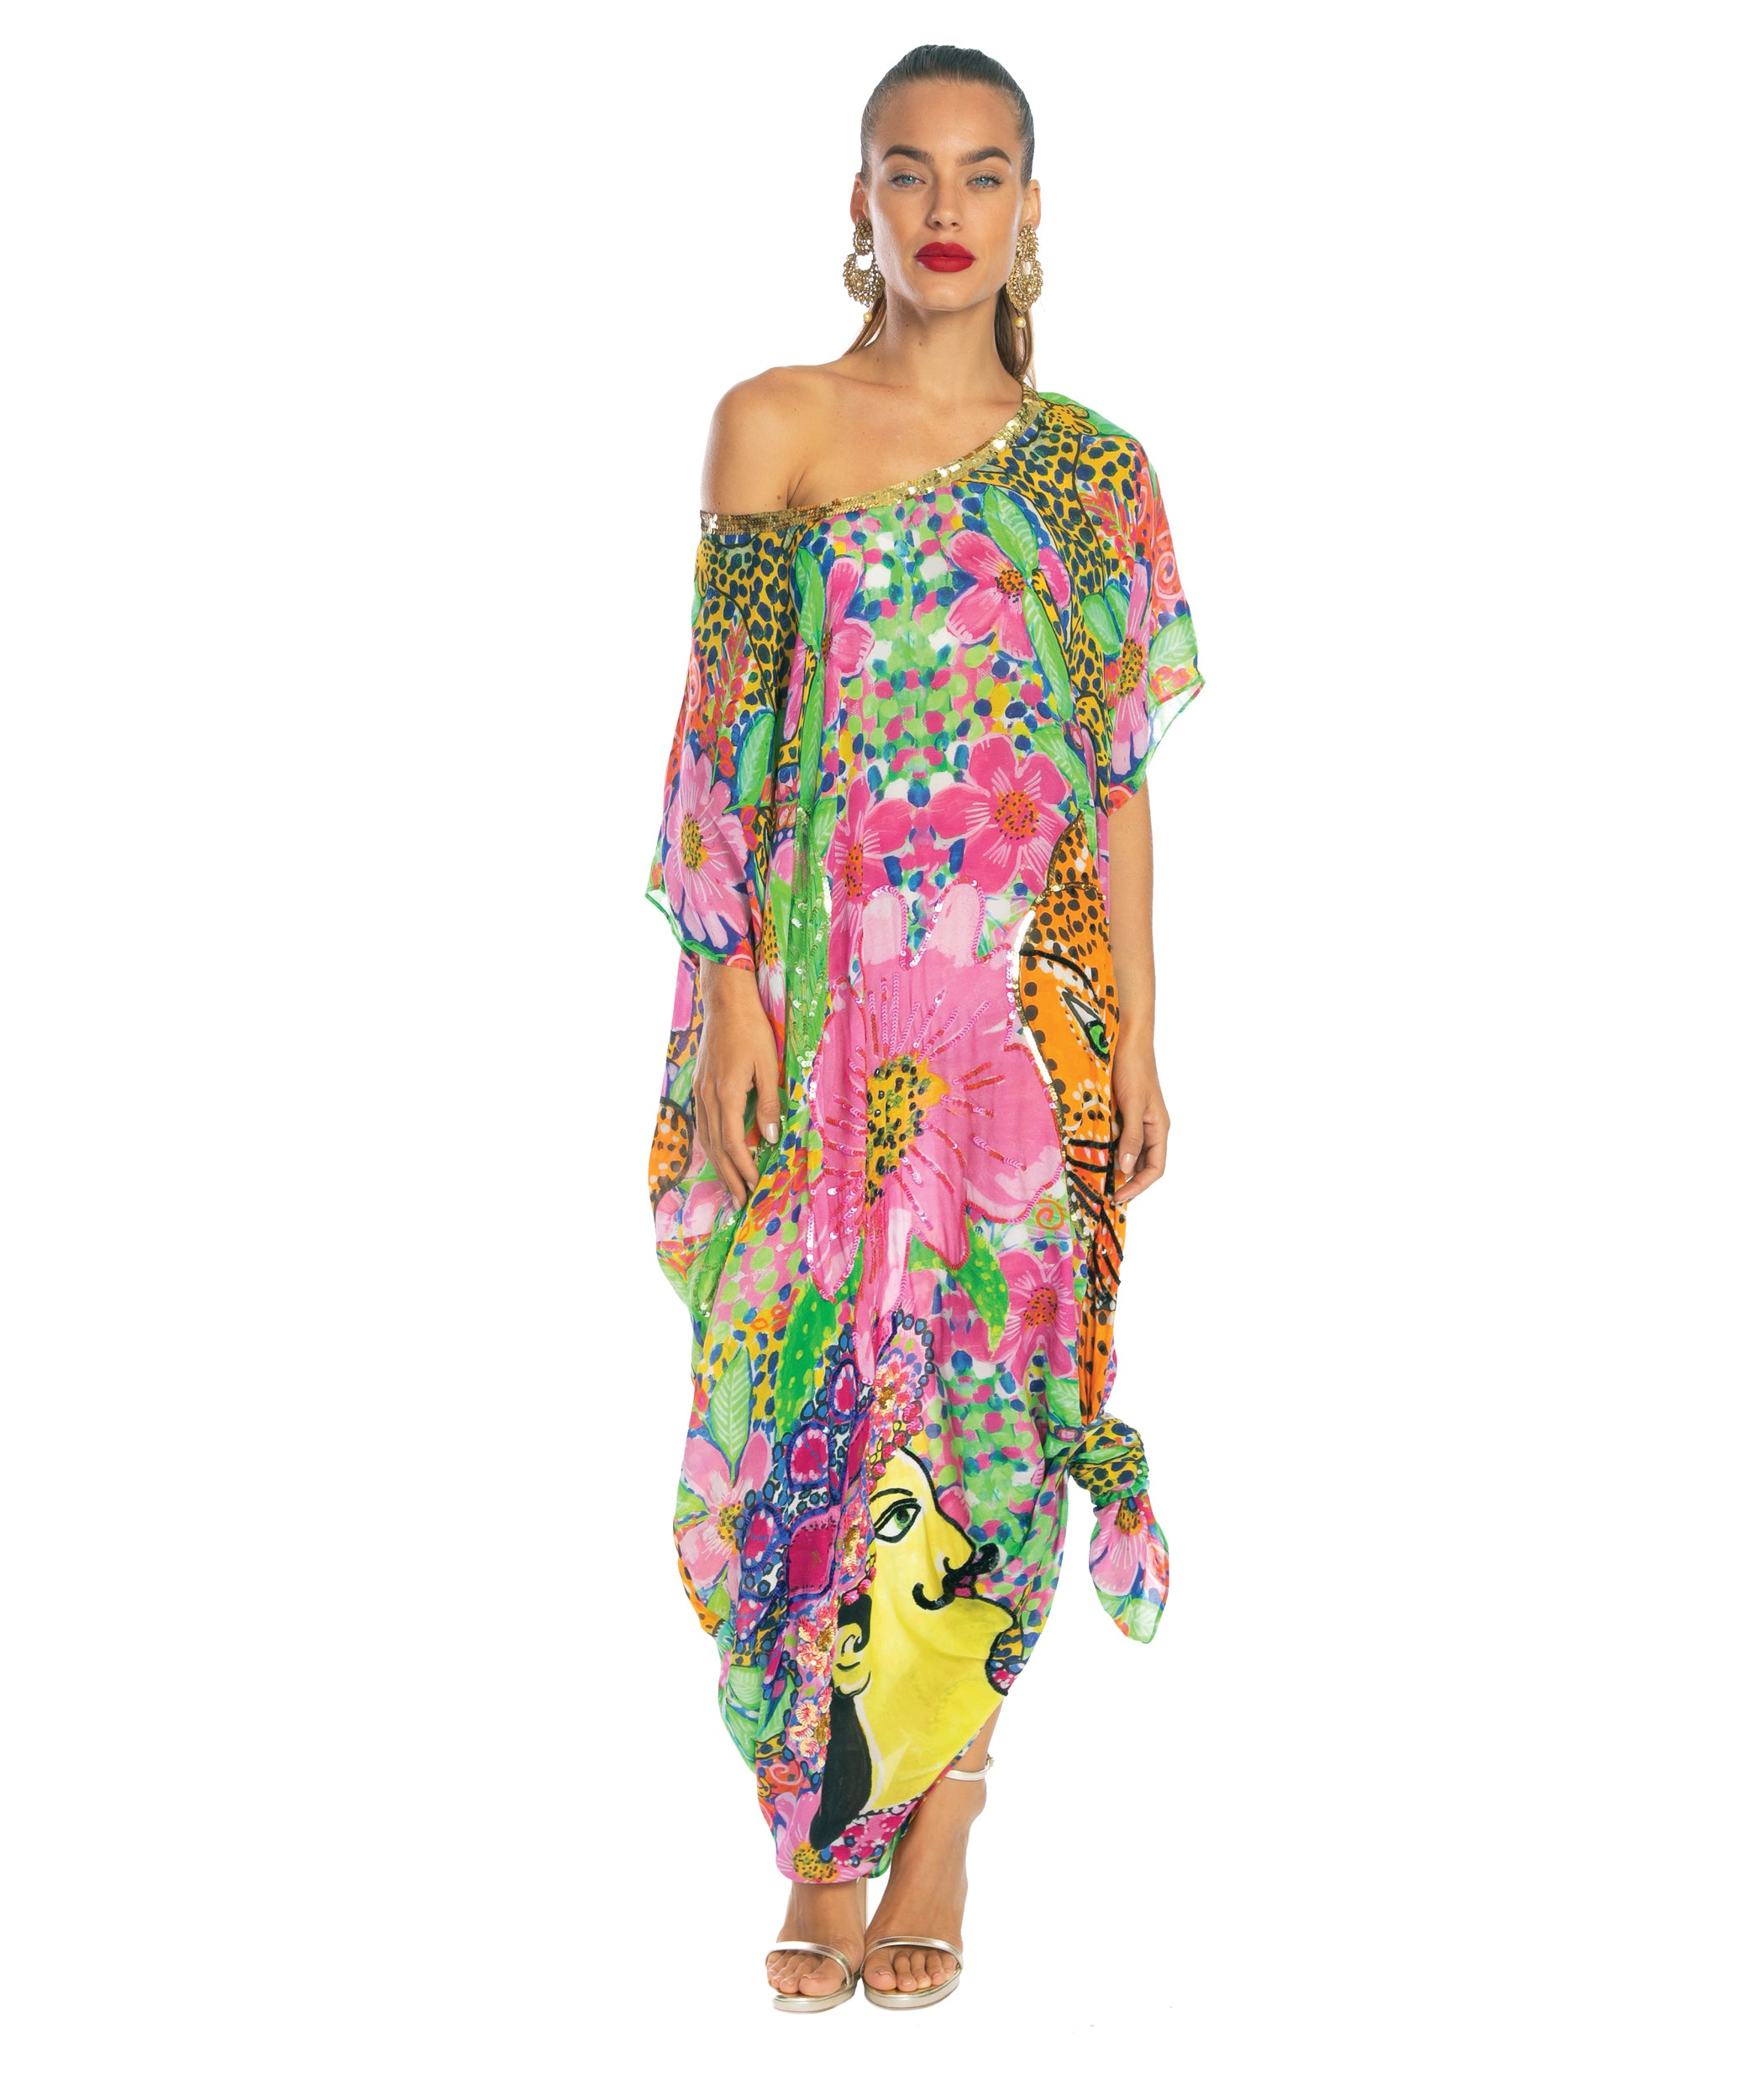 The Maharaja Kaftan by Bonita Kaftans